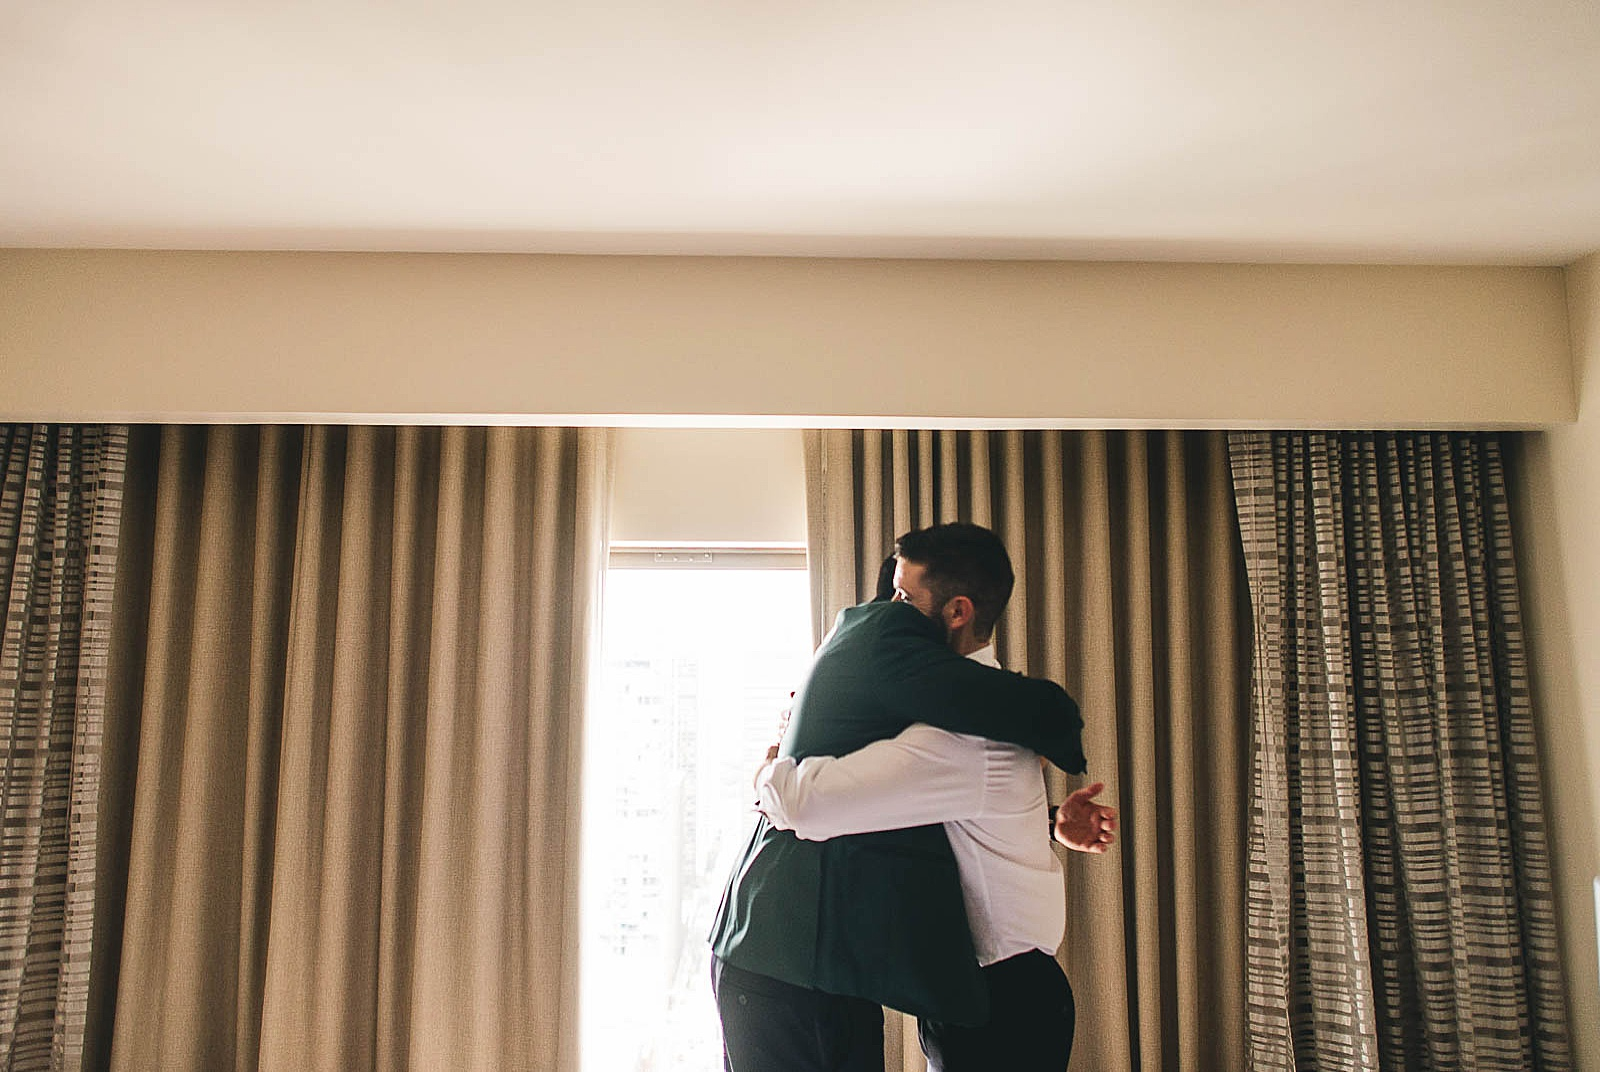 10 groom hugging best man photo - Ivy Room Chicago Wedding Photos // Bethany + Anthony